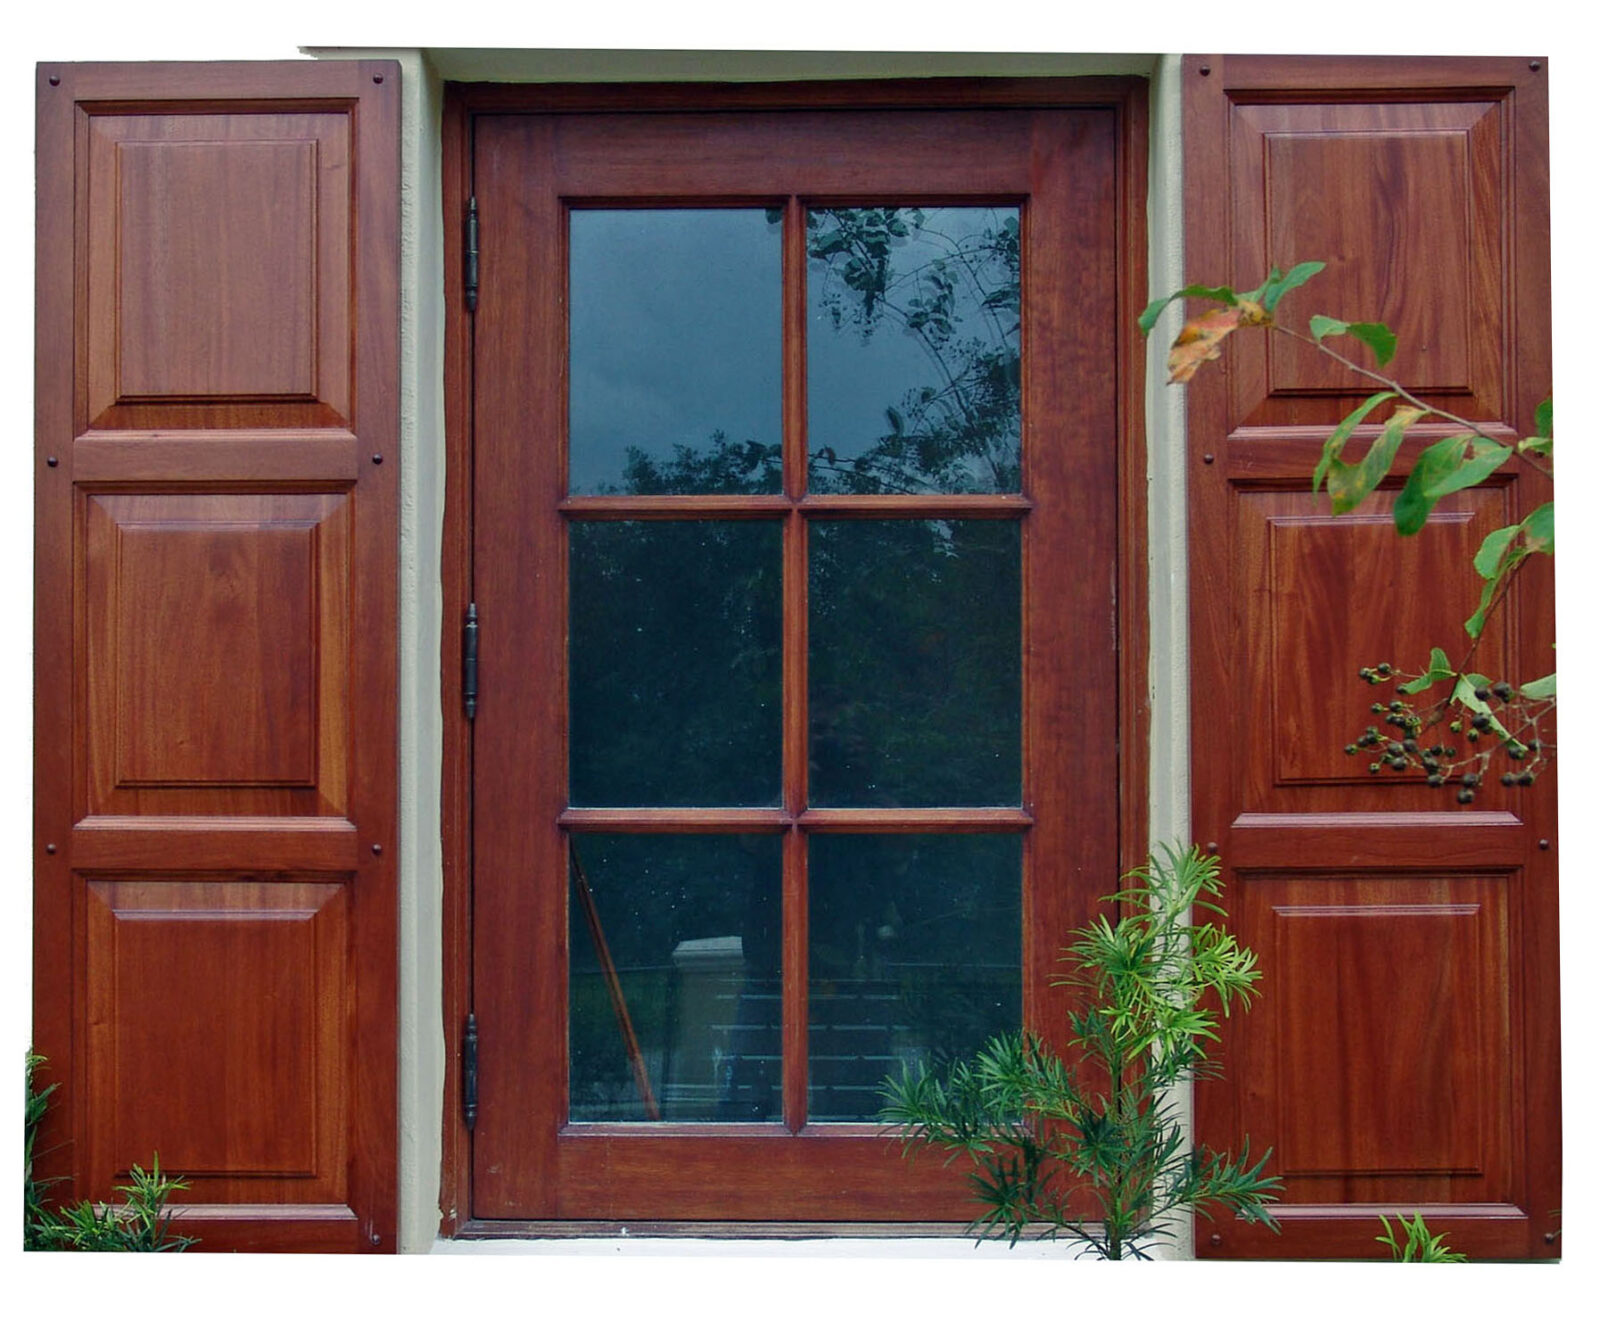 GABLES ESTATES WINDOW WITH SHUTTER